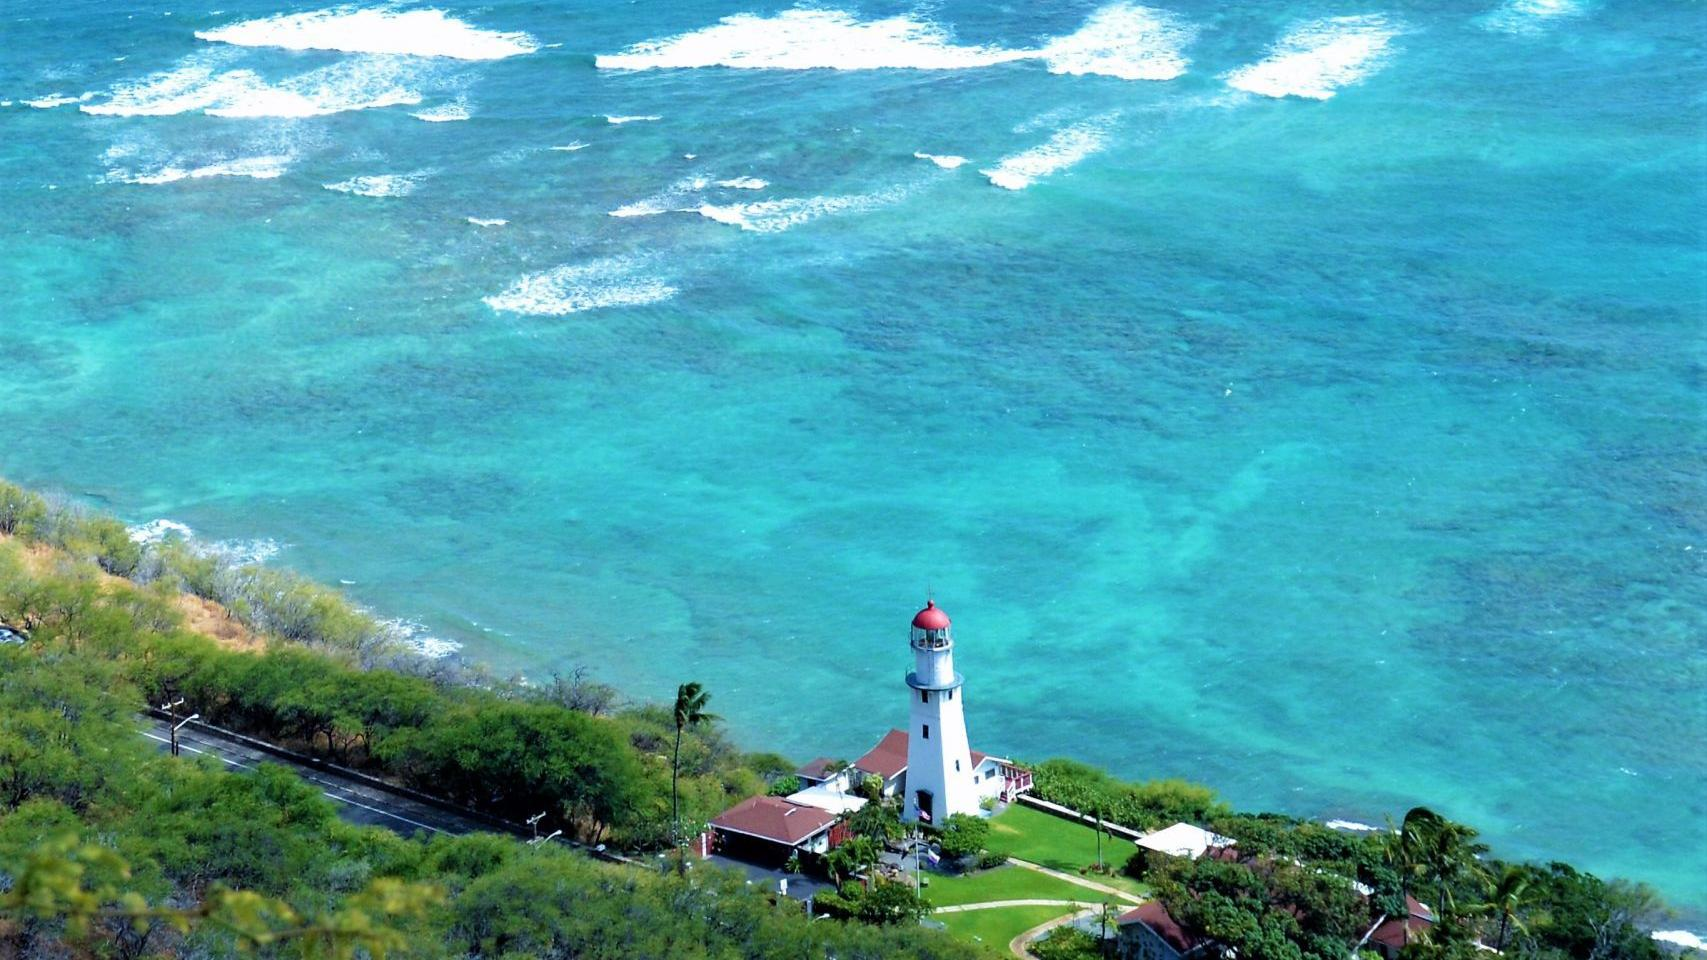 Destinations Photo Contest Spotlight: See some of your best photos of Hawaii